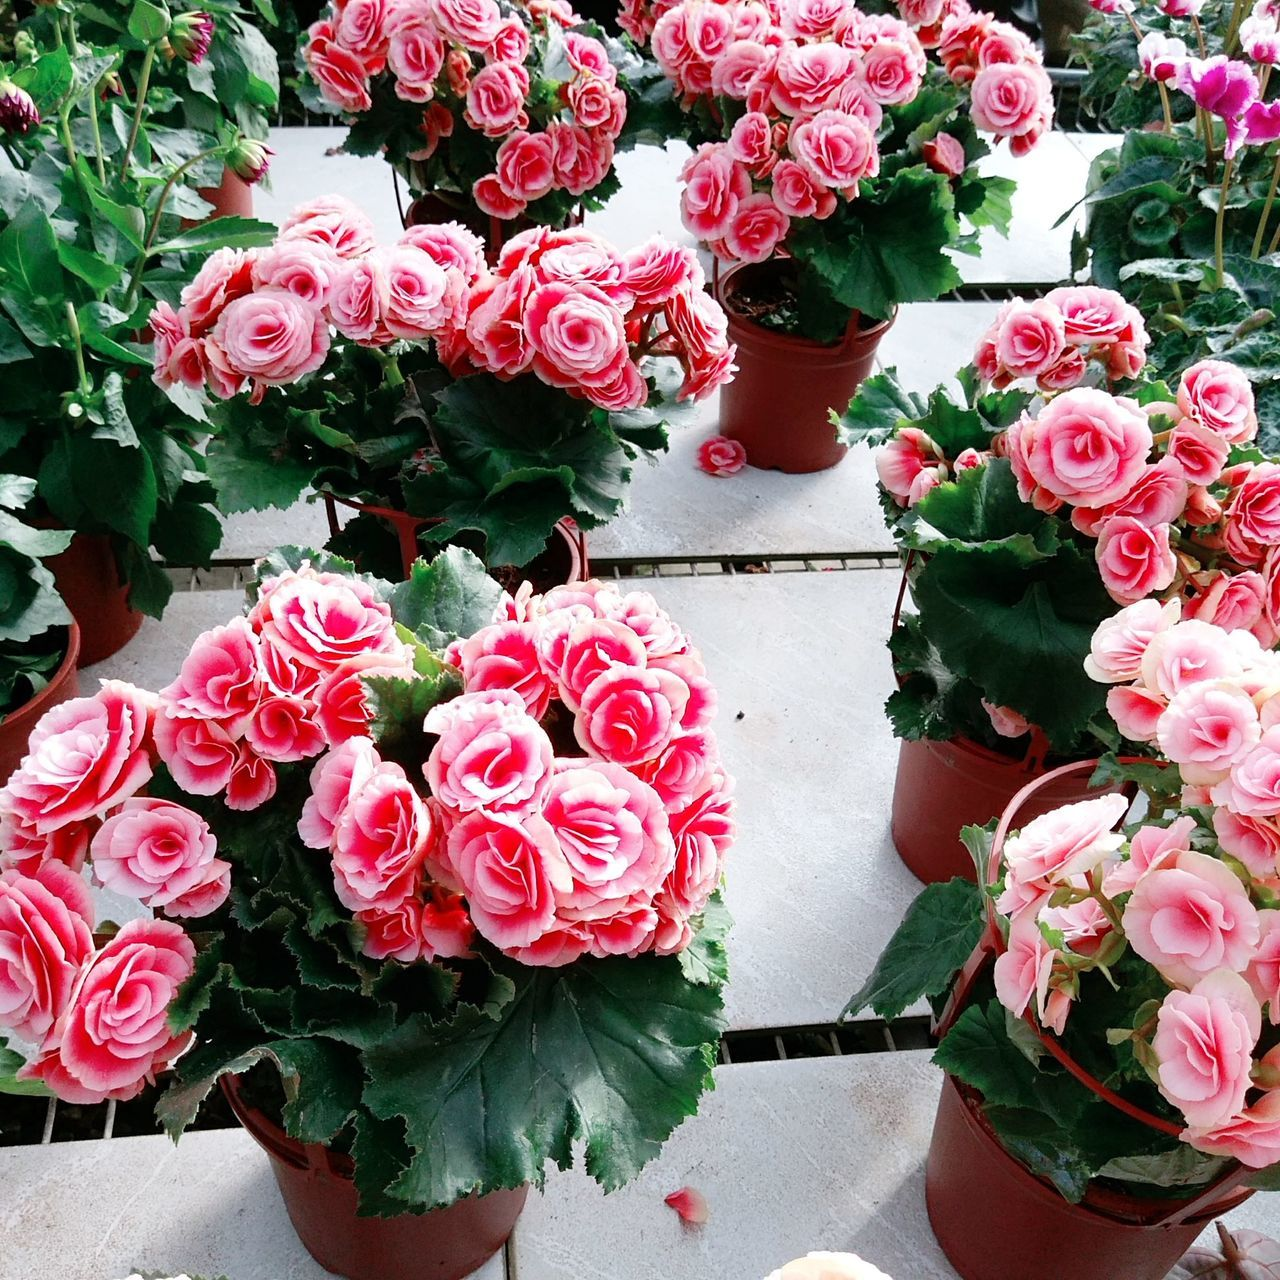 Flower Nature Plant Potted Plant Riga Begonia Taiwan Beautiful 花 麗格海棠 花市 盆栽 植物 台灣 美麗